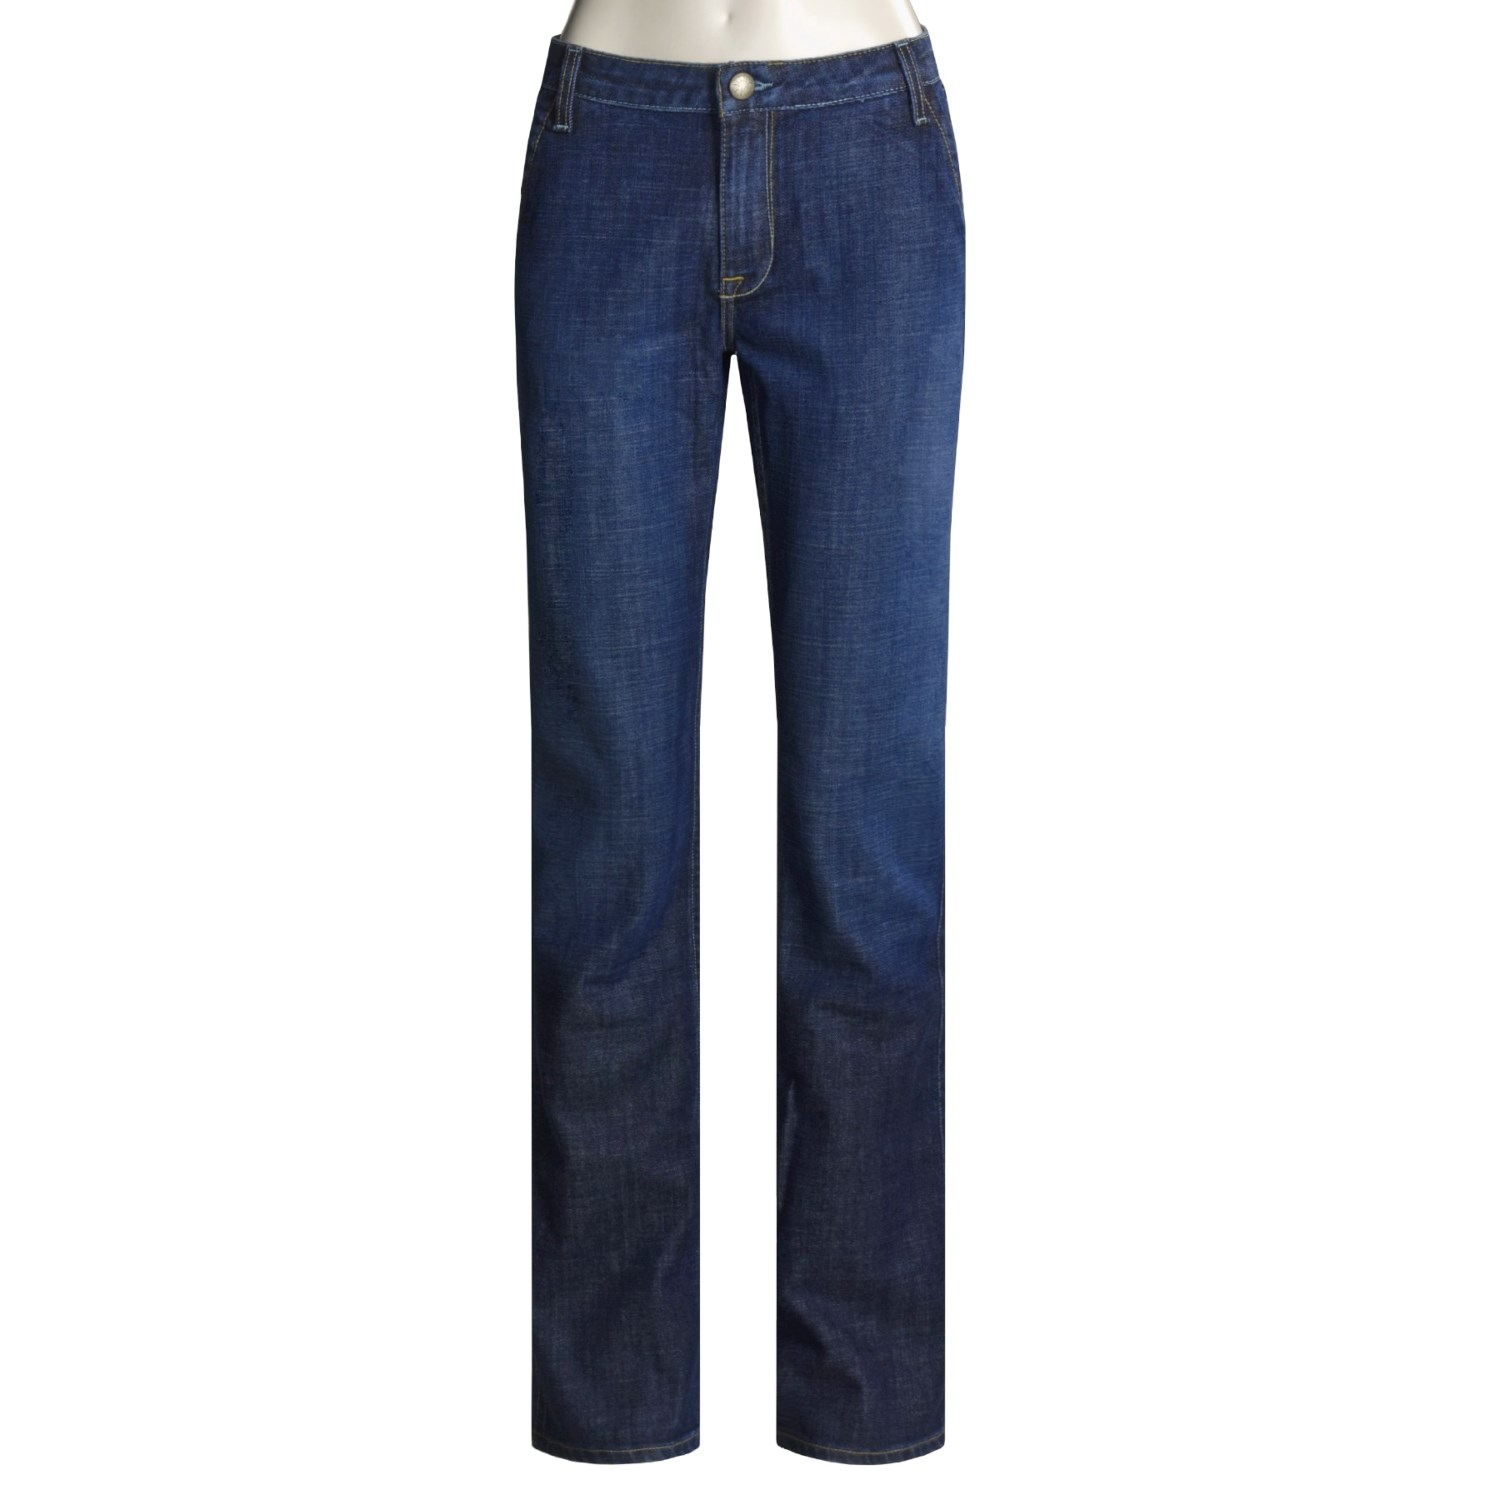 To buy jeans for women online, you need to pick the style of jeans from the available ones- slim fit, boyfriend jeans, ripped jeans and much more. At paydayloansboise.gq, you can buy denim jeans for women online from lines like Vero Moda, United Colors of Benetton, River Island and Only in a wide range of styles and prices.